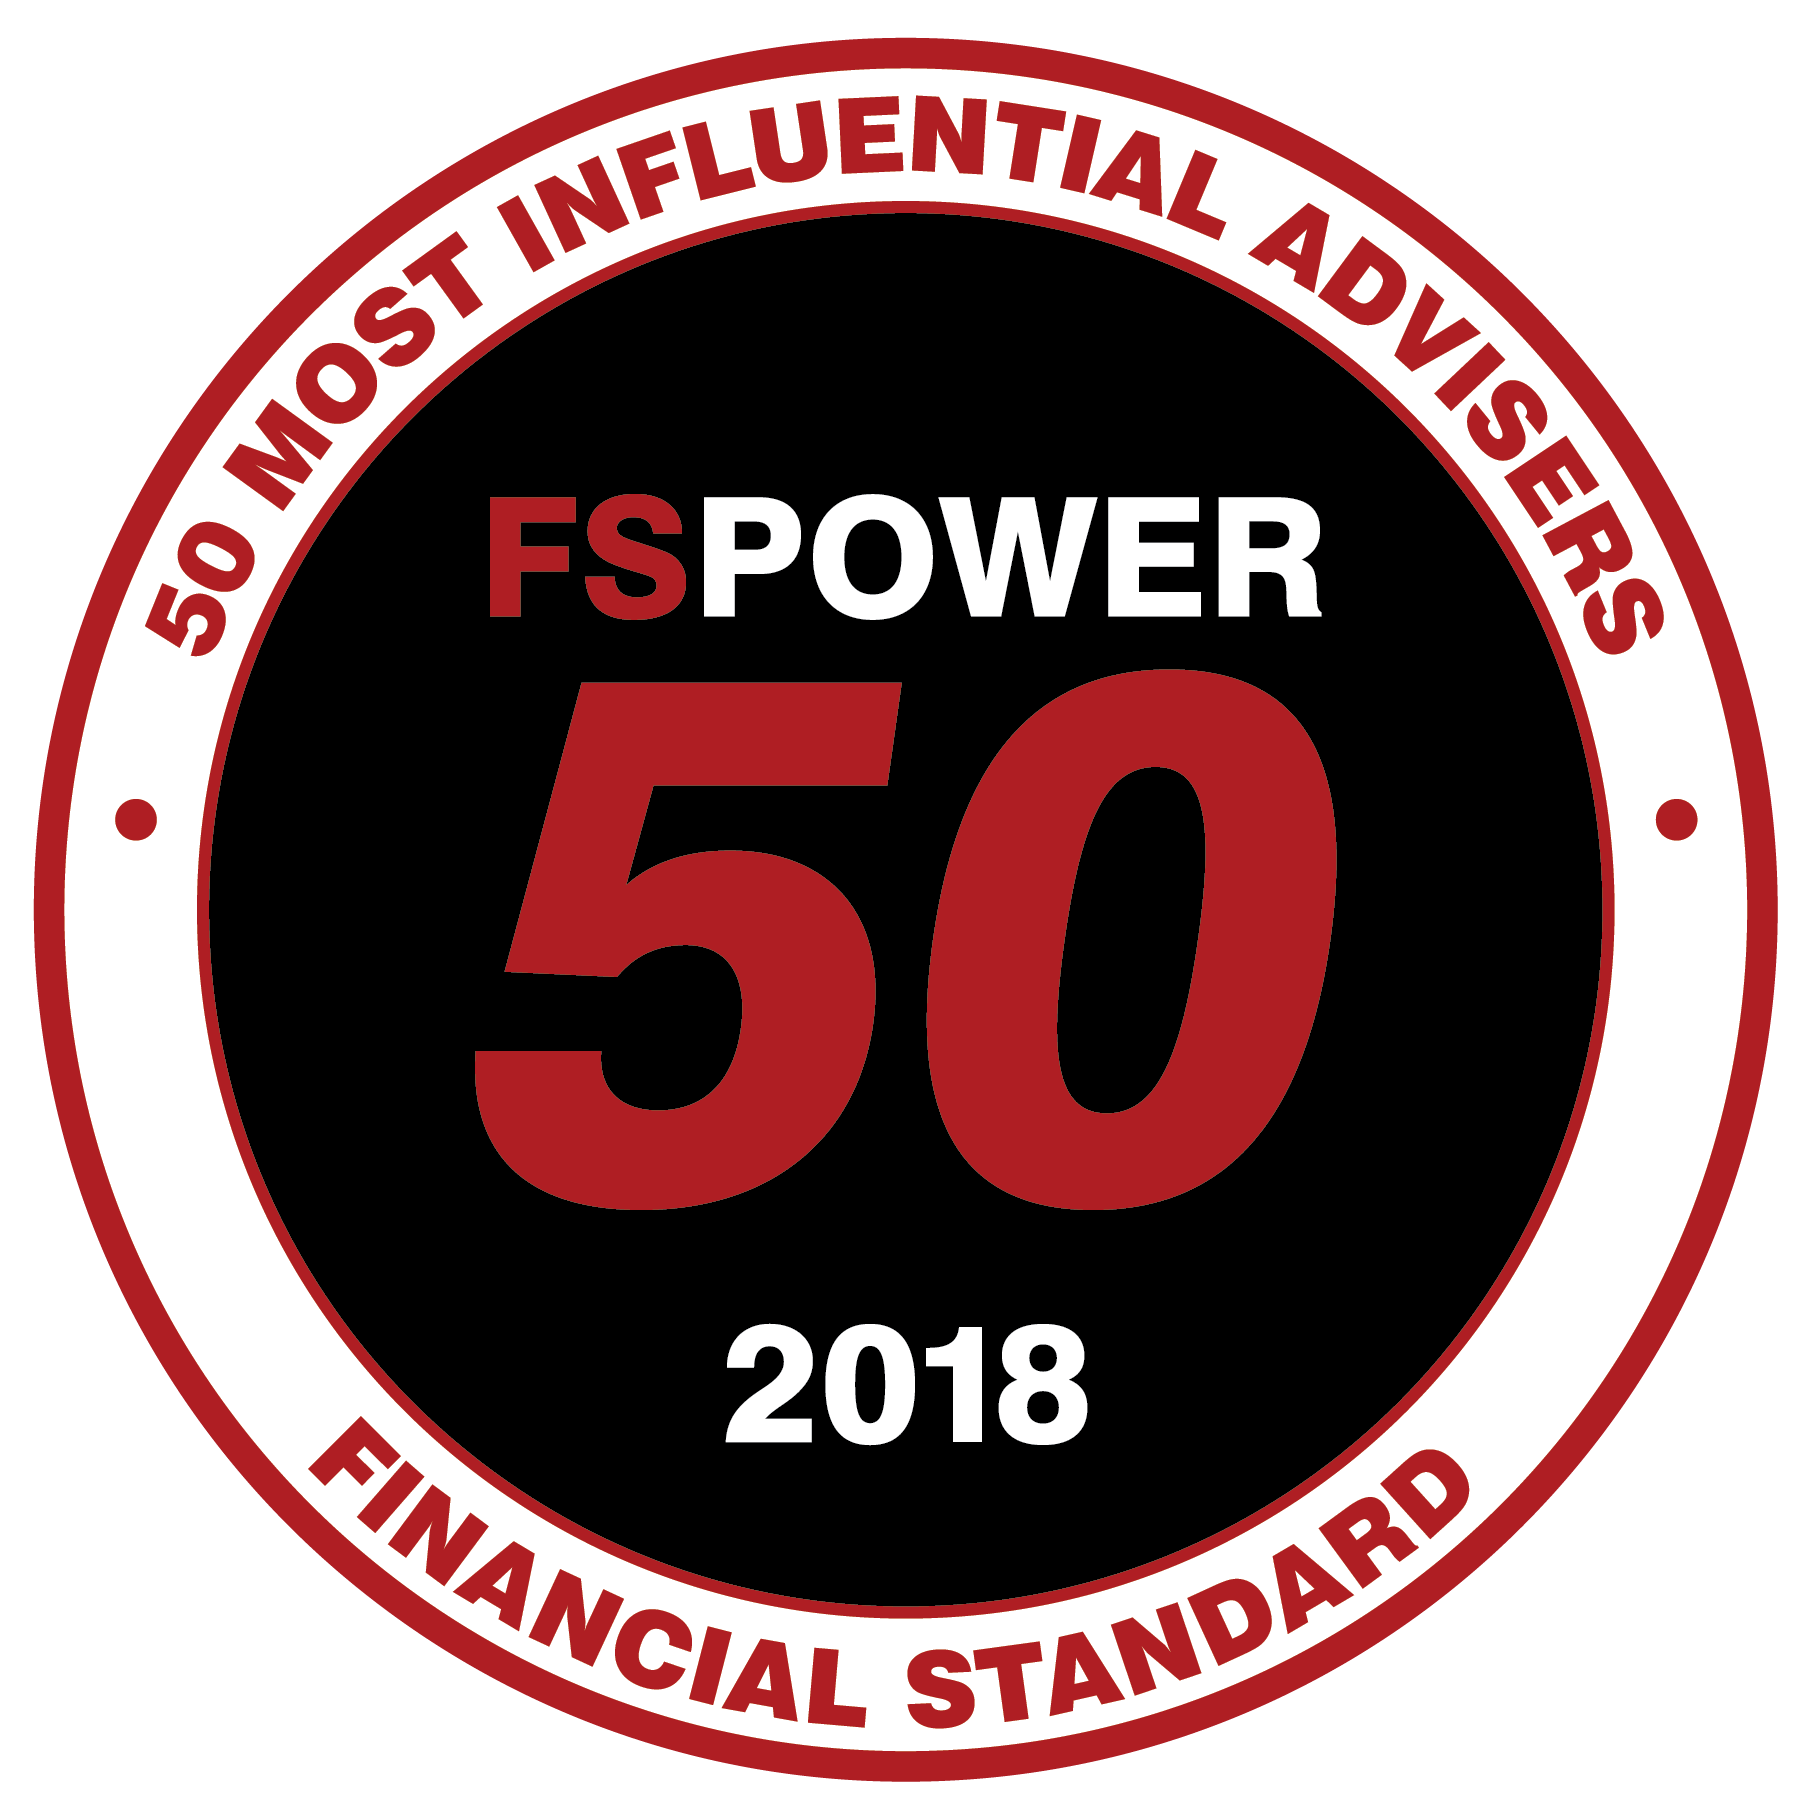 FS_Power50_Badge_2018.png